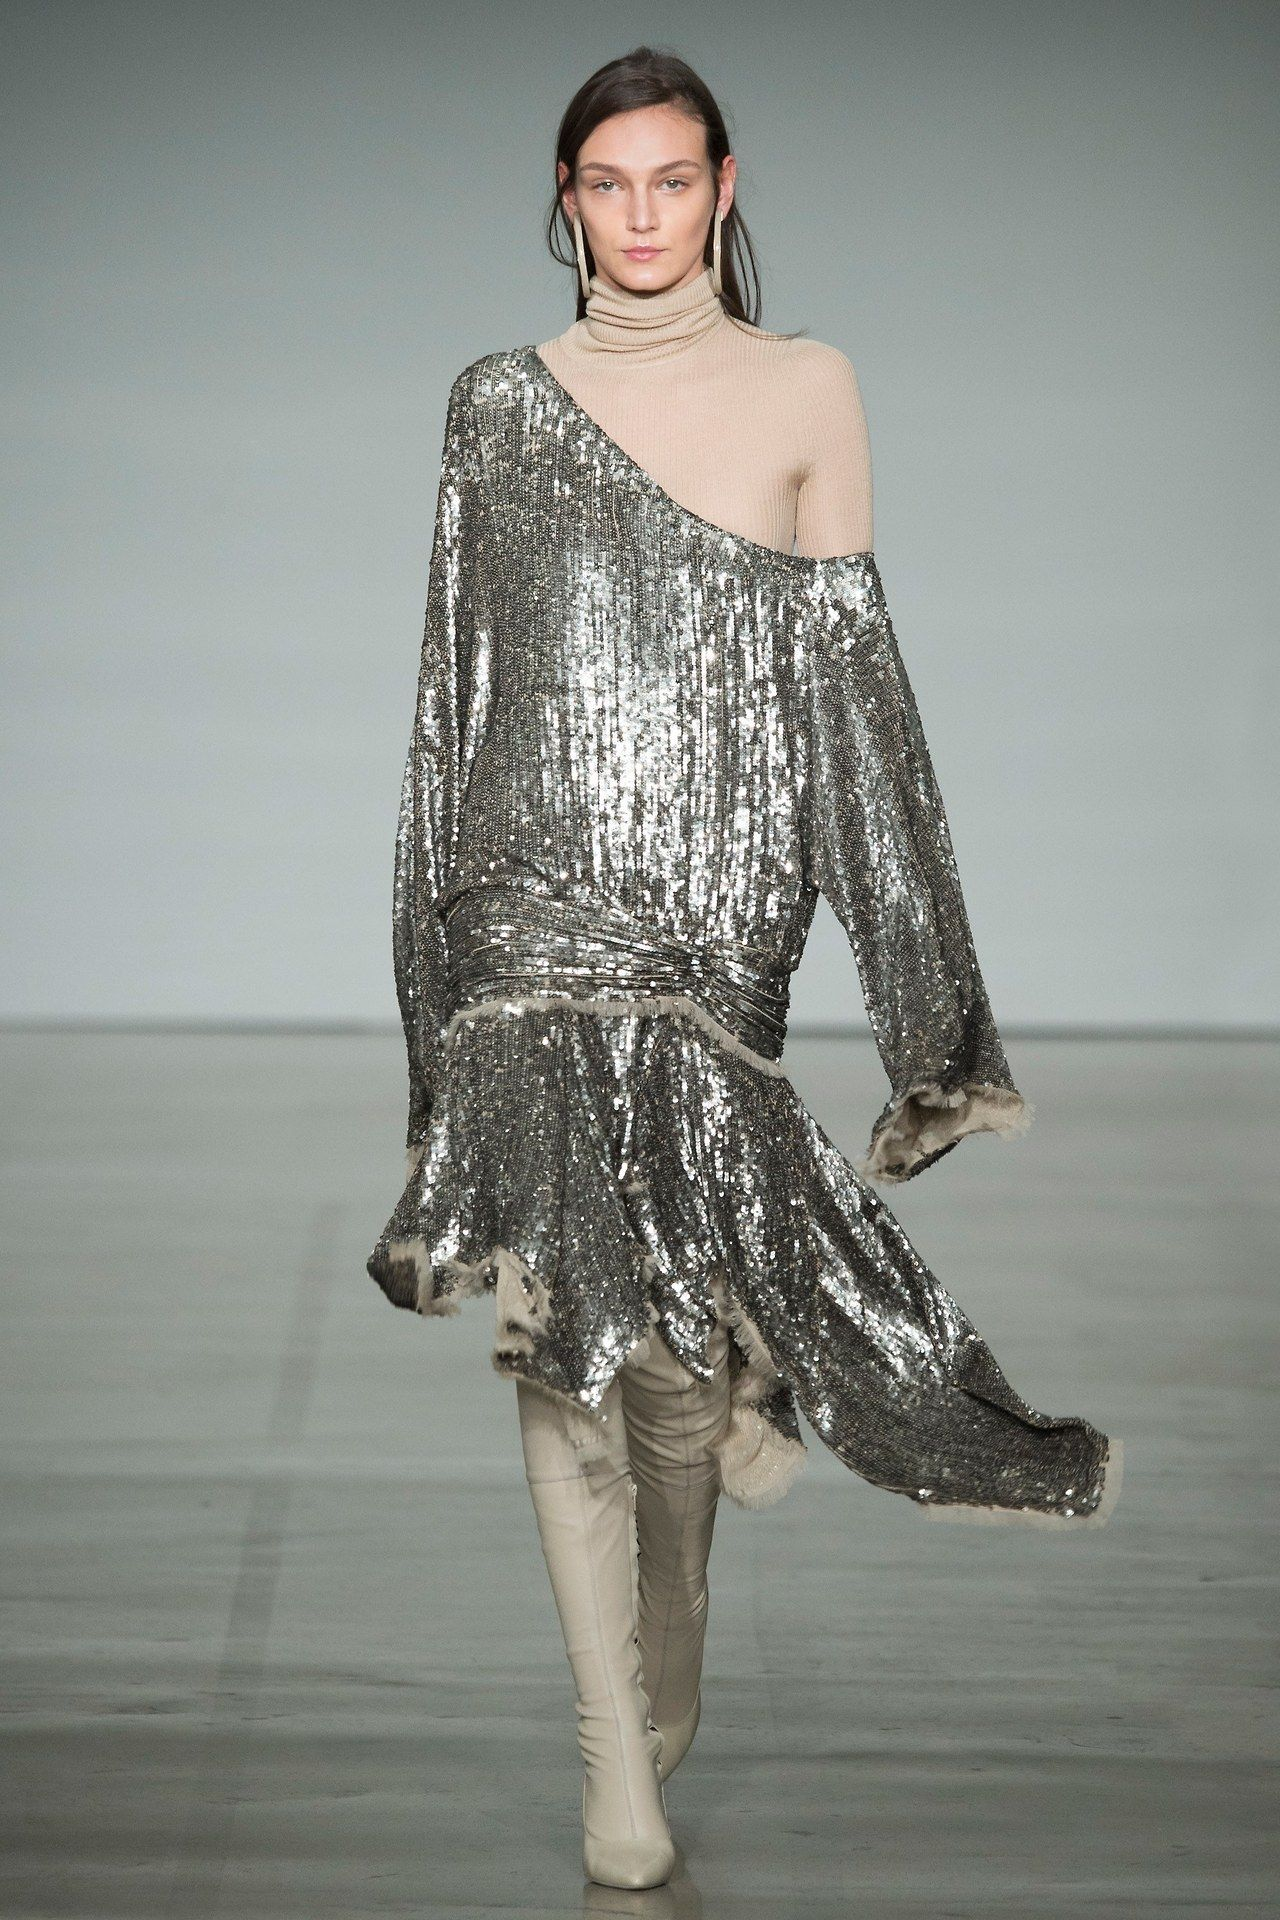 Deimante misiunaite at zimmermann fall moda adora